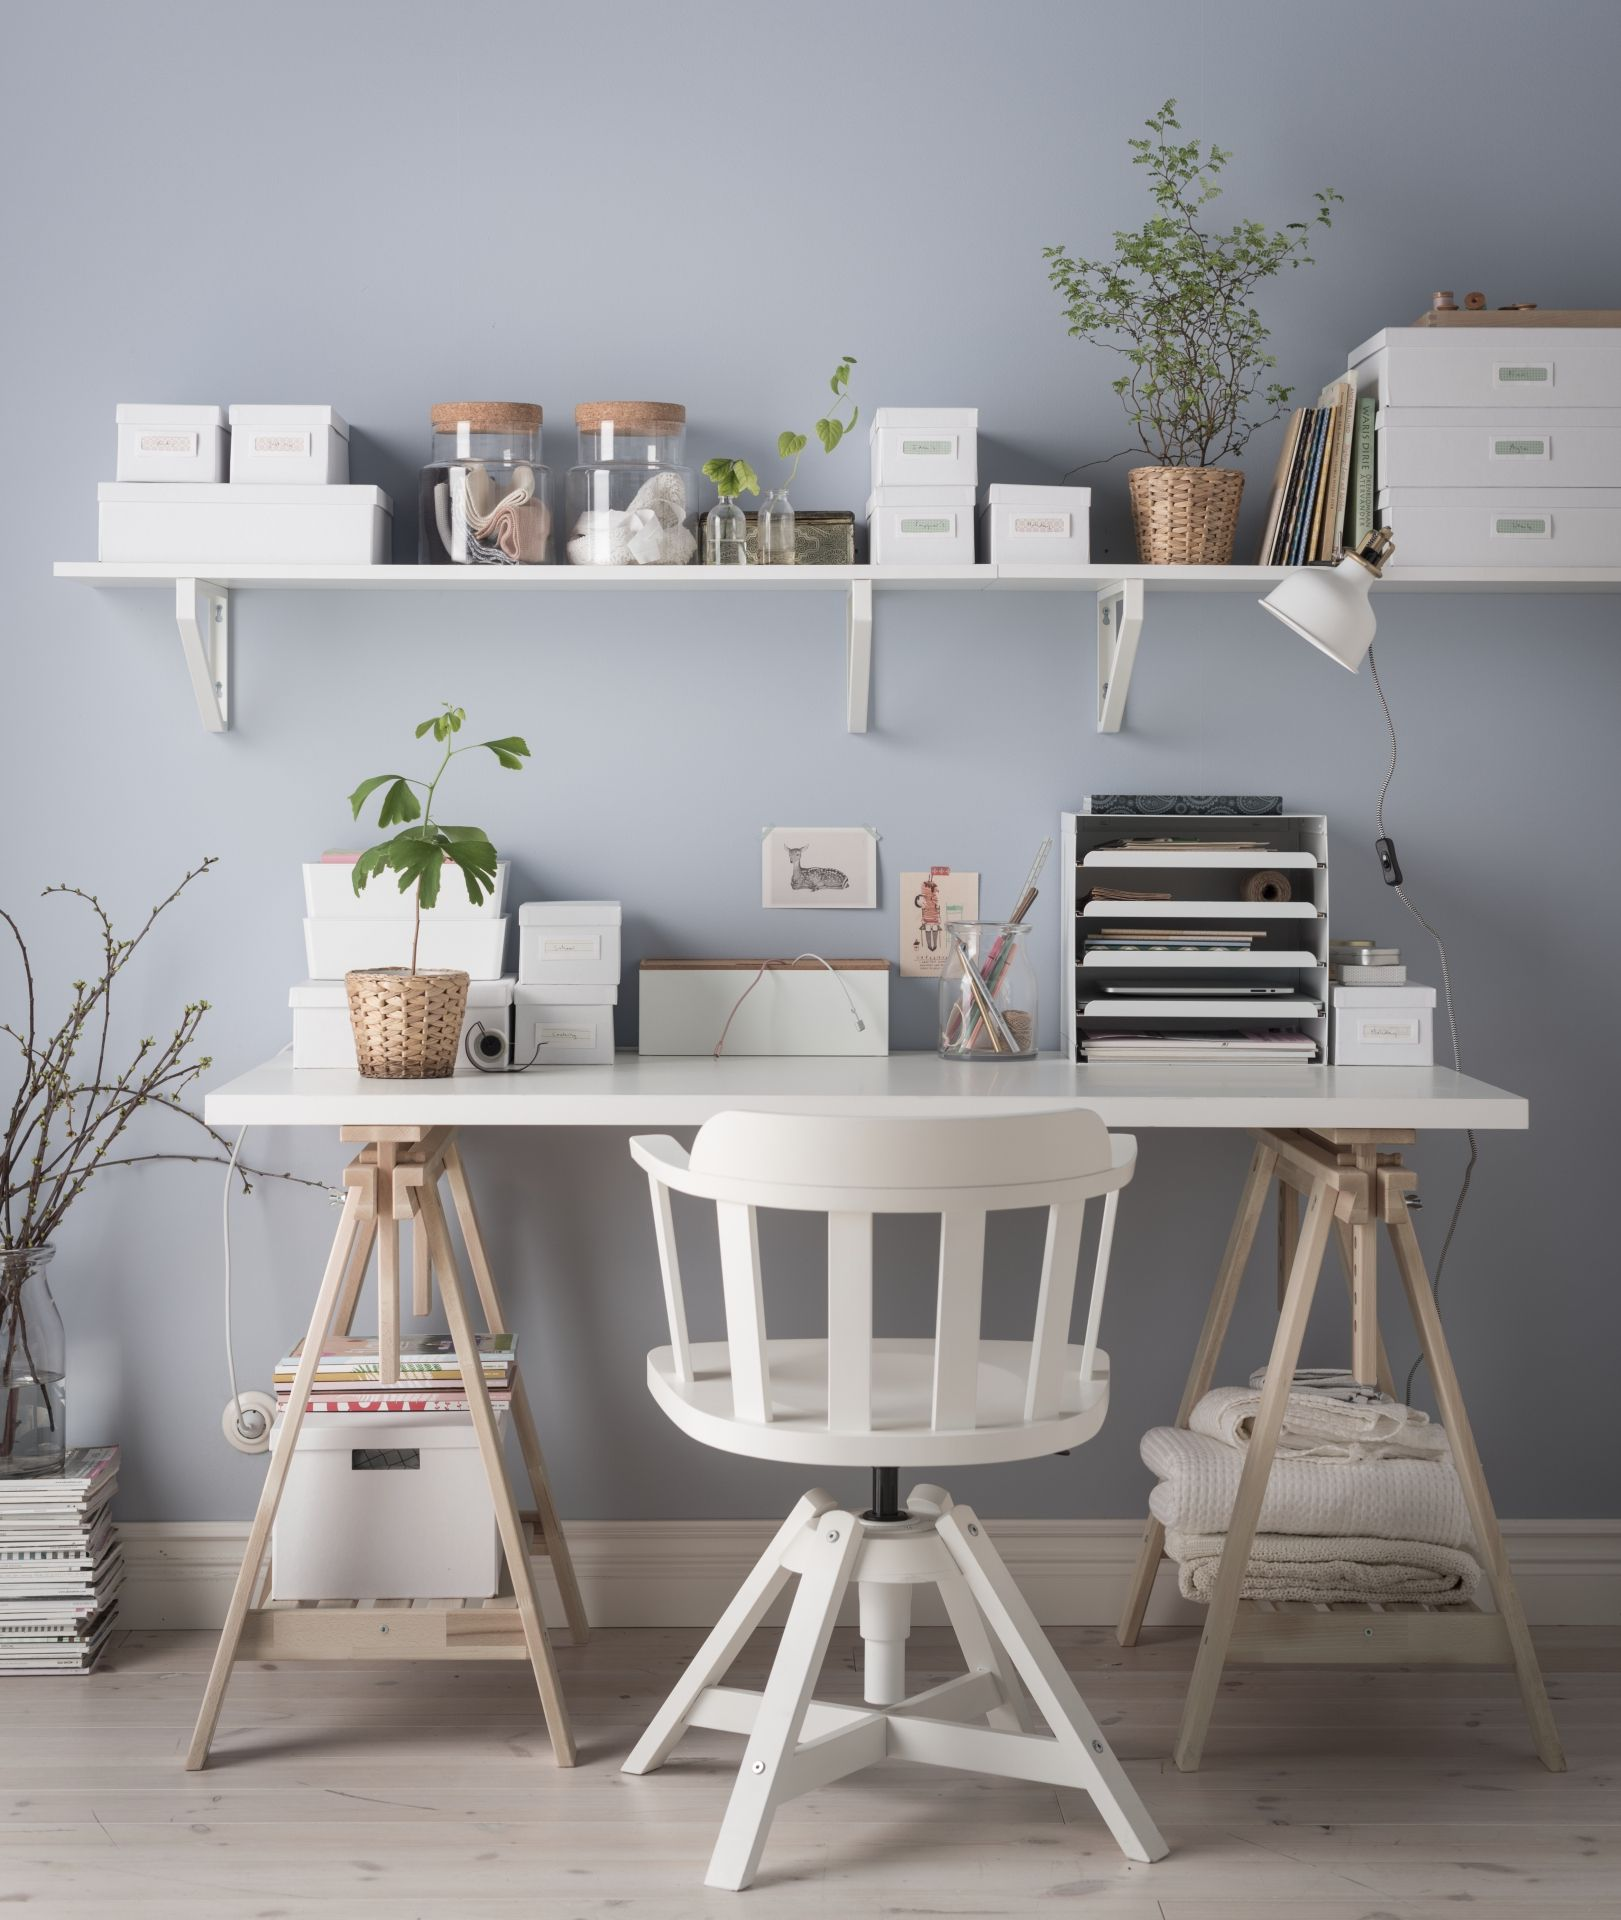 Ikea Beuken Bureau.Finnvard Schraag Met Plank Beuken High Achieving Students Ikea